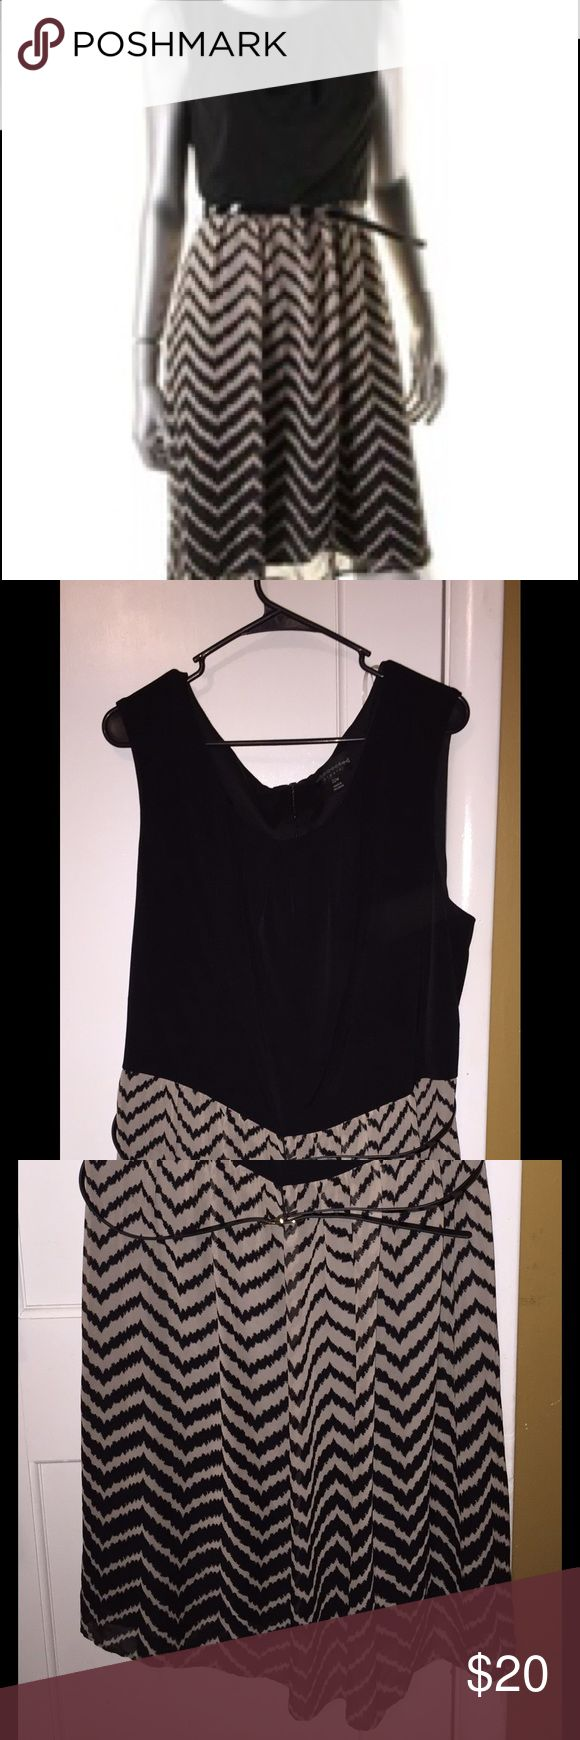 Connected Apparel Plus Size Chevron Dress Excellent condition - worn once. Size 22W, stretchy and very comfortable. Belted, Sleeveless, Jewel Neck dress. So cute on! it is just too large for me. Pet and smoke free home. Connected Apparel  Dresses Midi